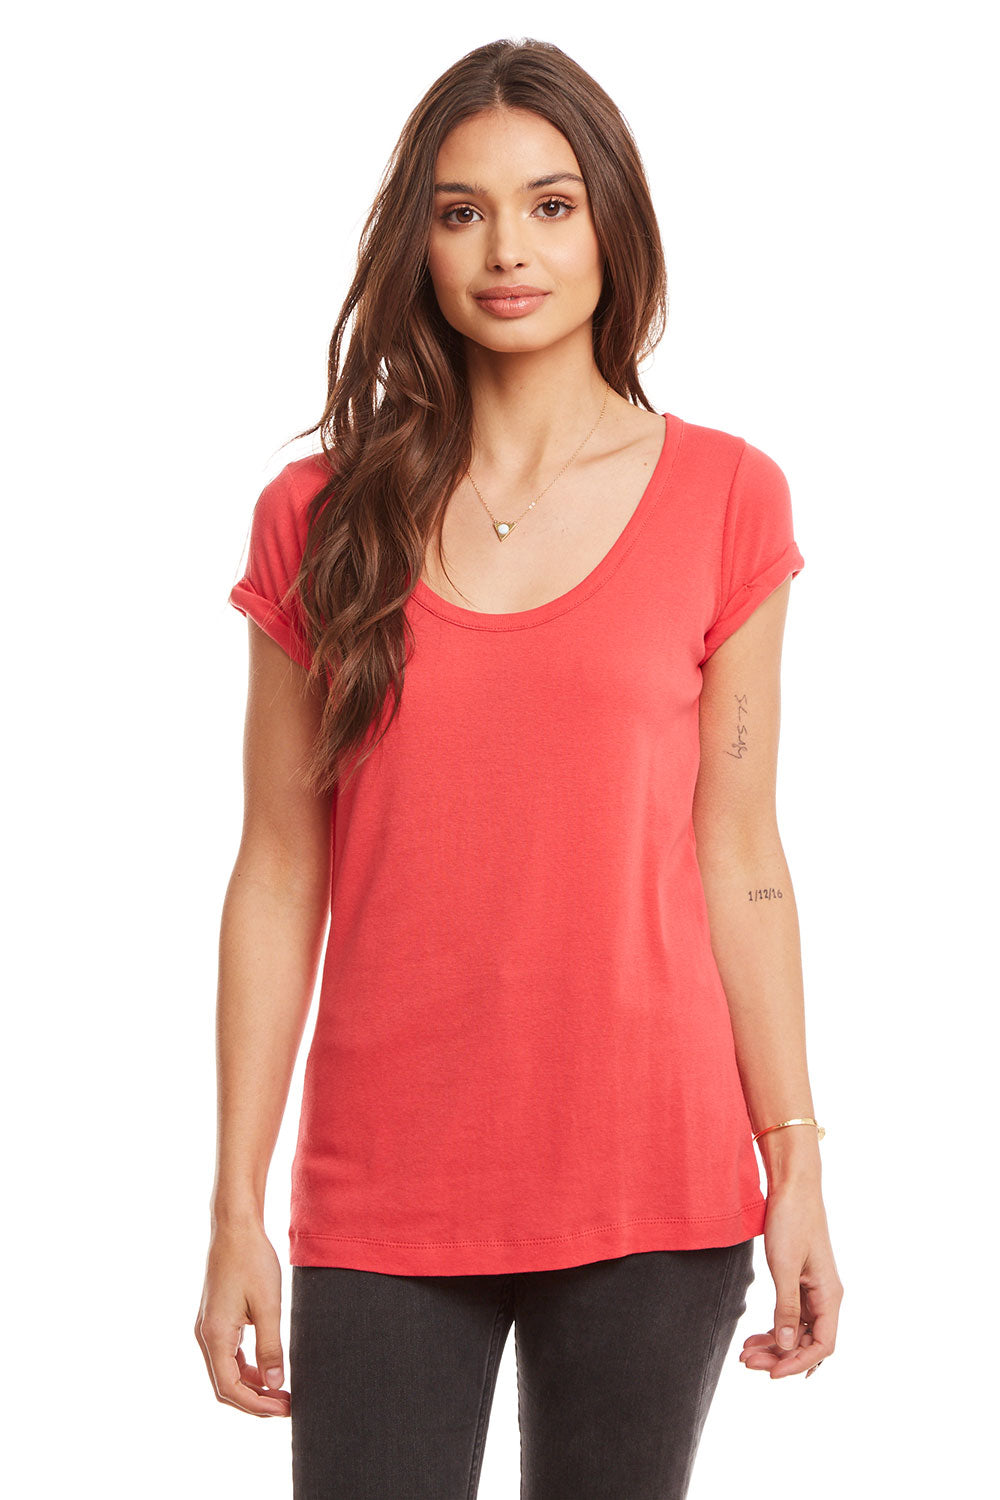 Baby Rib Rolled Short Sleeve Scoop Neck Slim Tee, WOMENS, chaserbrand.com,chaser clothing,chaser apparel,chaser los angeles